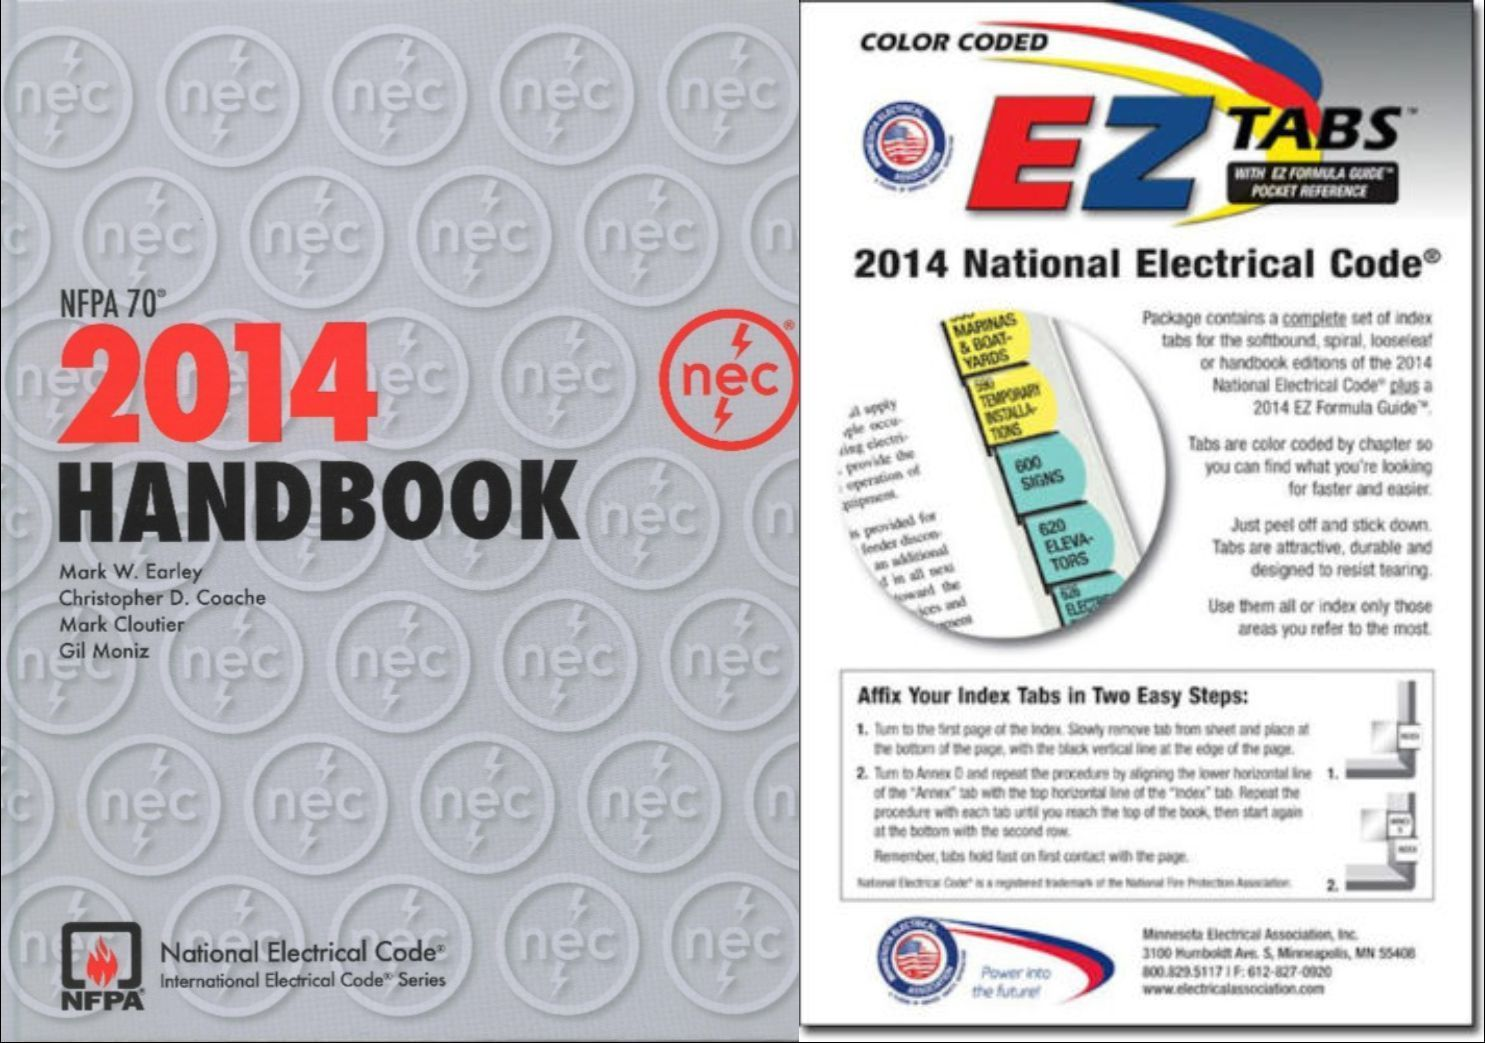 Electric Code Book | Home idea | Pinterest | Electrical code ...